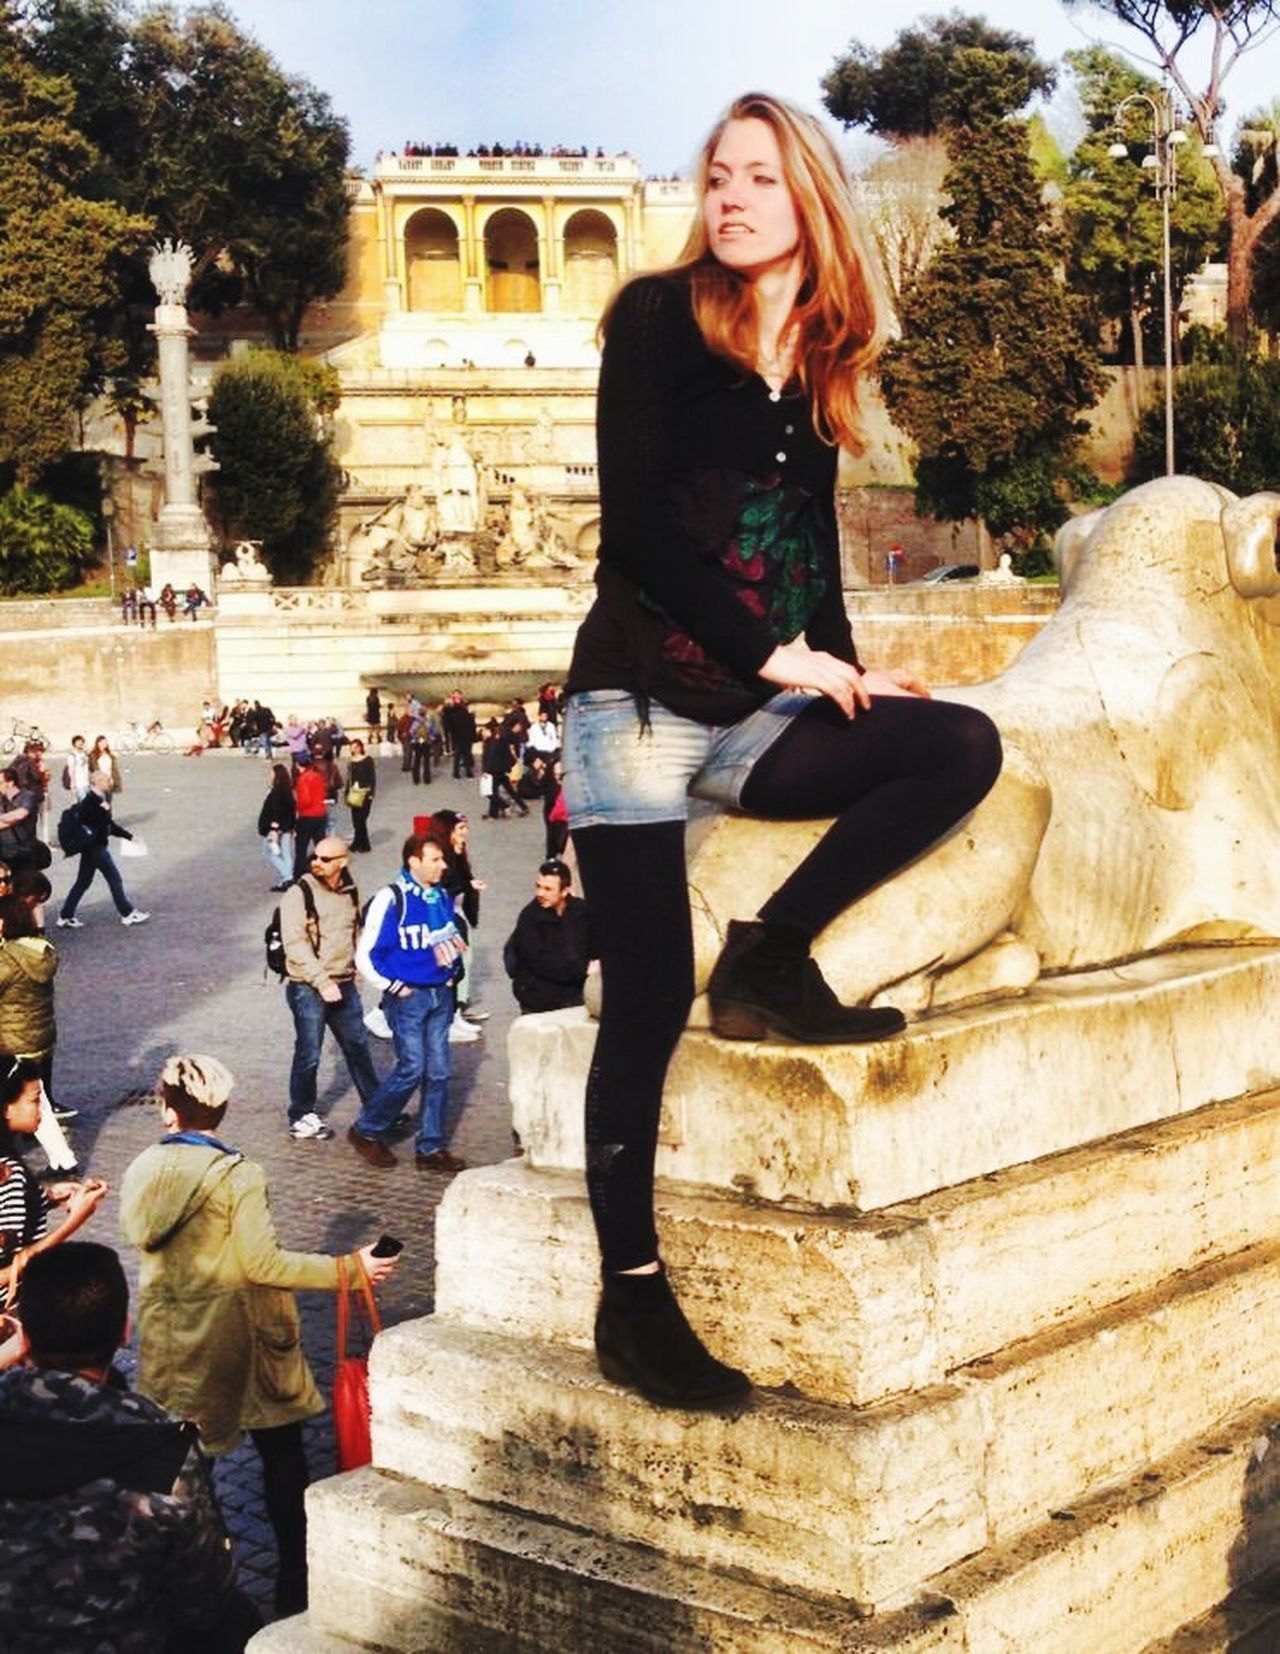 Piazza Del Popolo Rome Eterna Cittá Blonde Pincio LadyBlondie Model Italy Italia Roma Beautiful Place